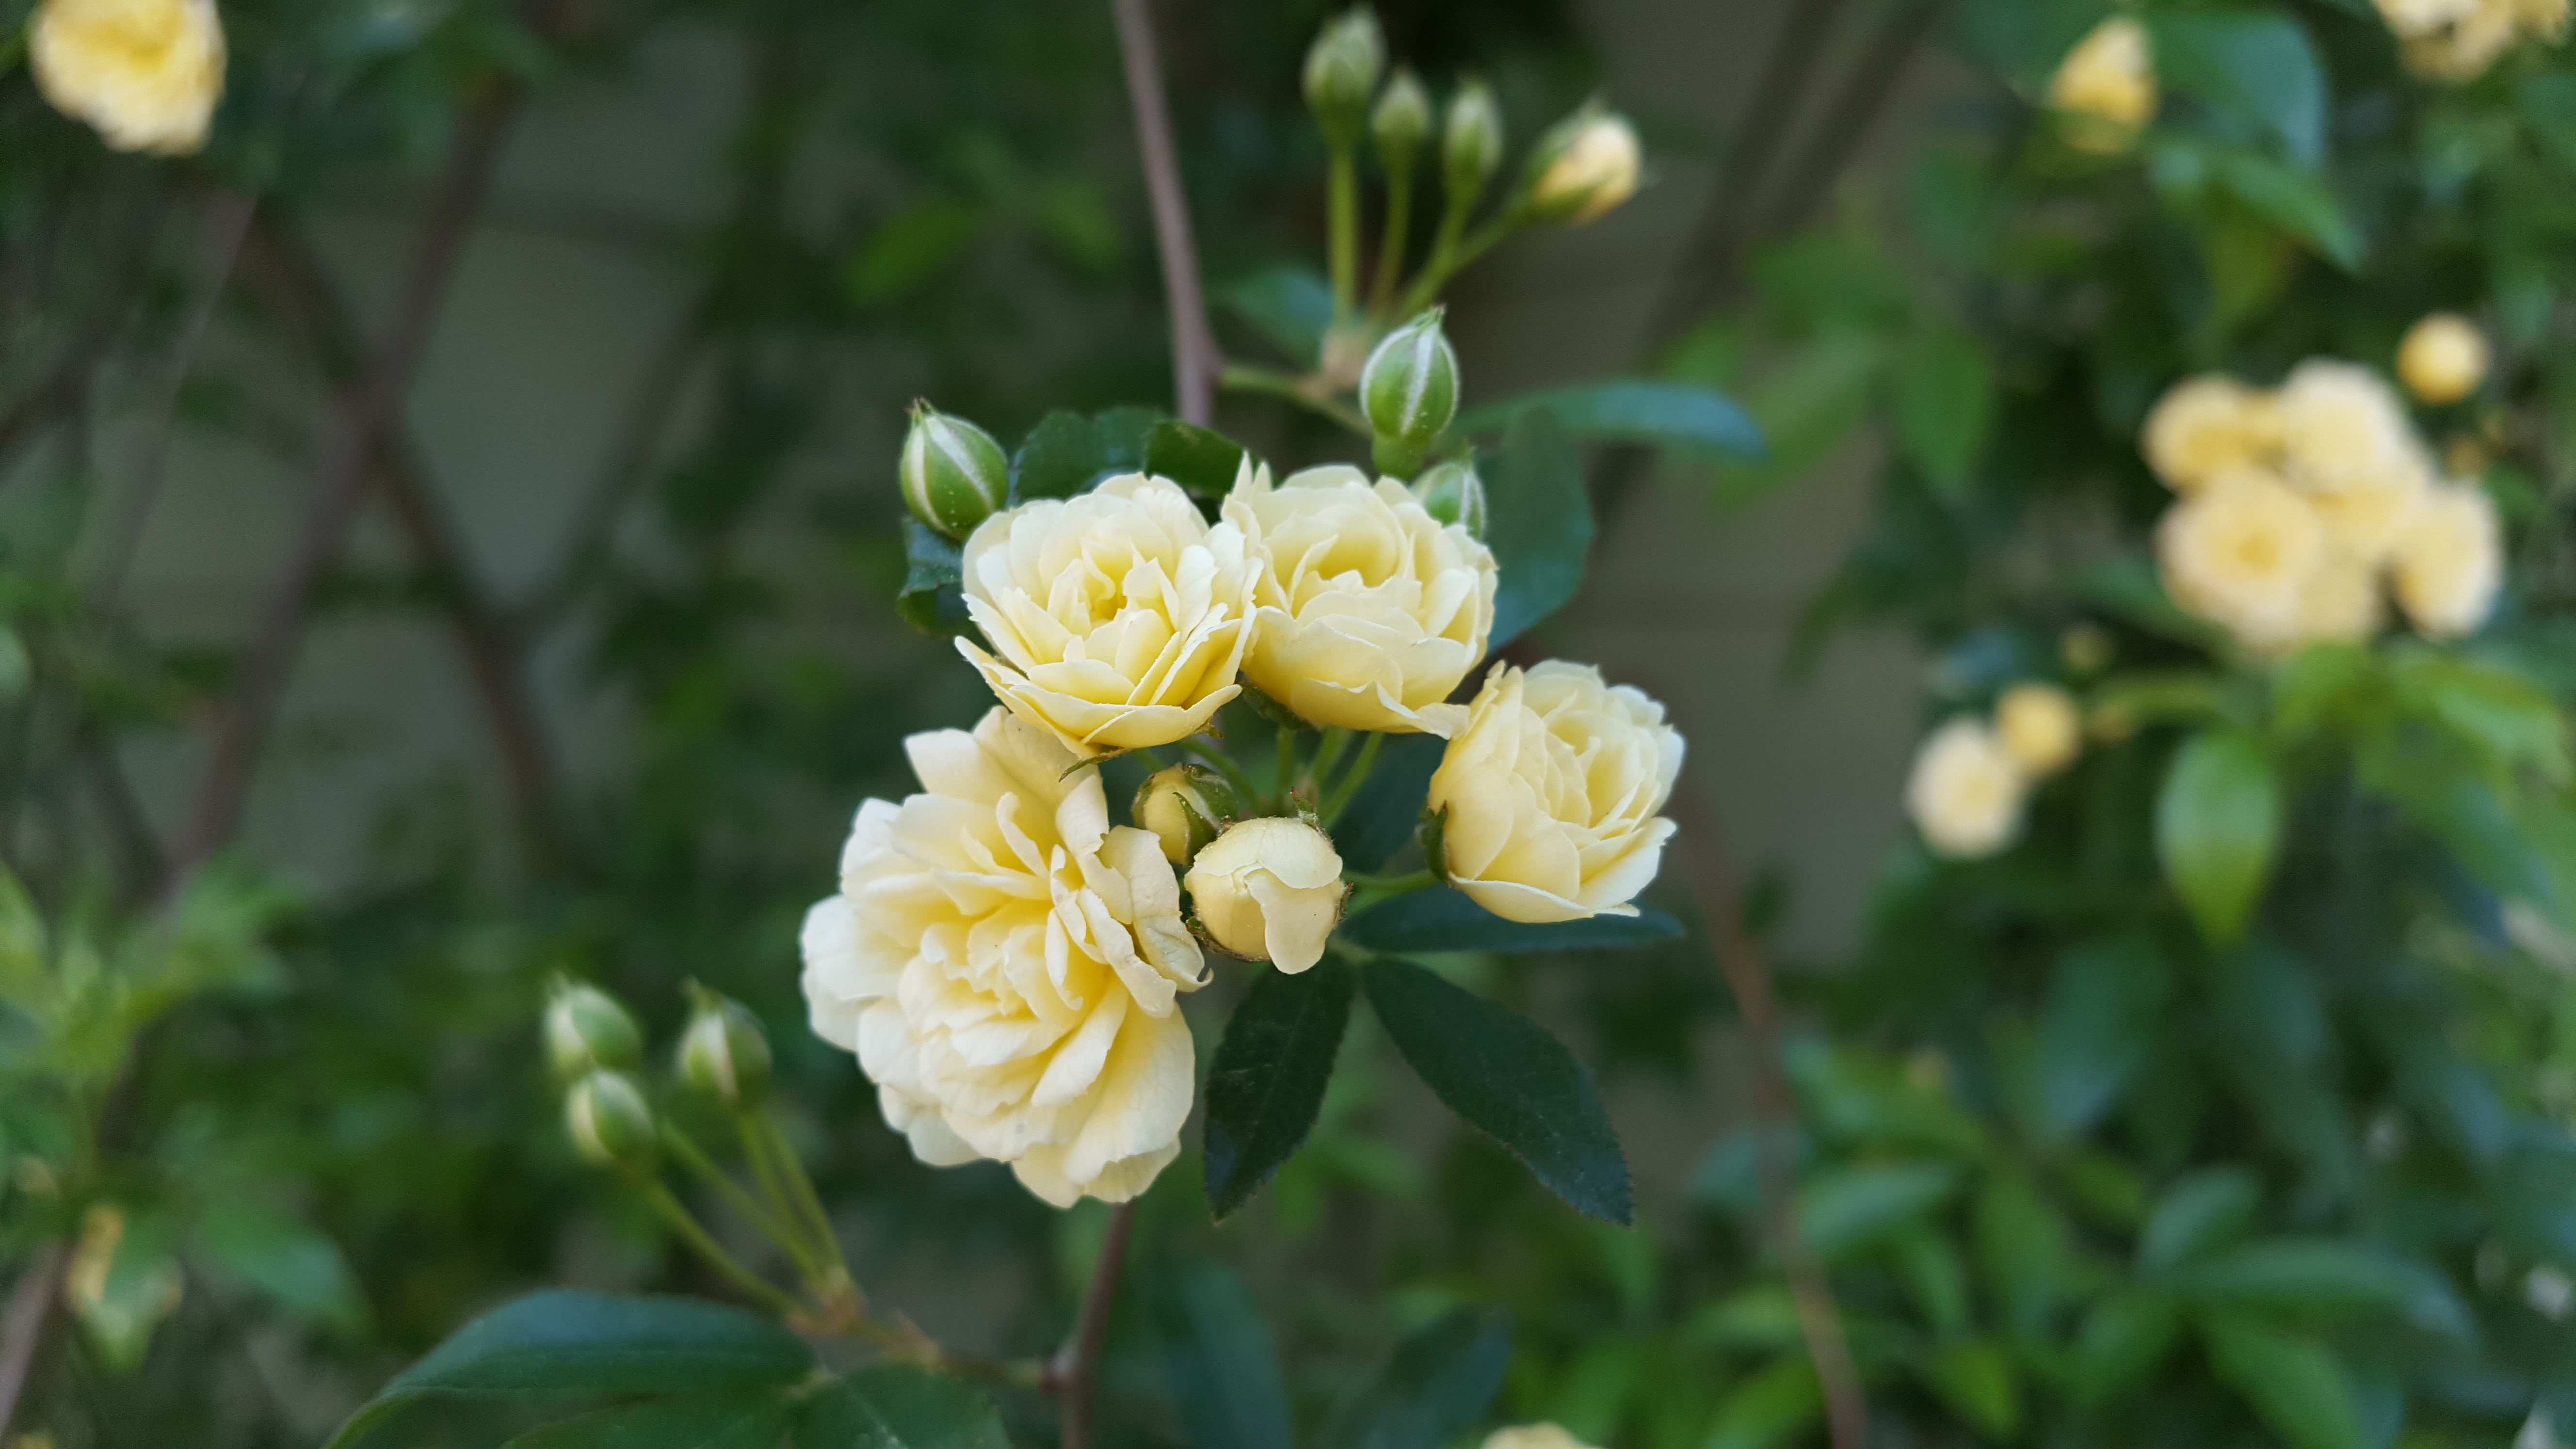 Lady Banks climbing rose, blooming March 29, 2016